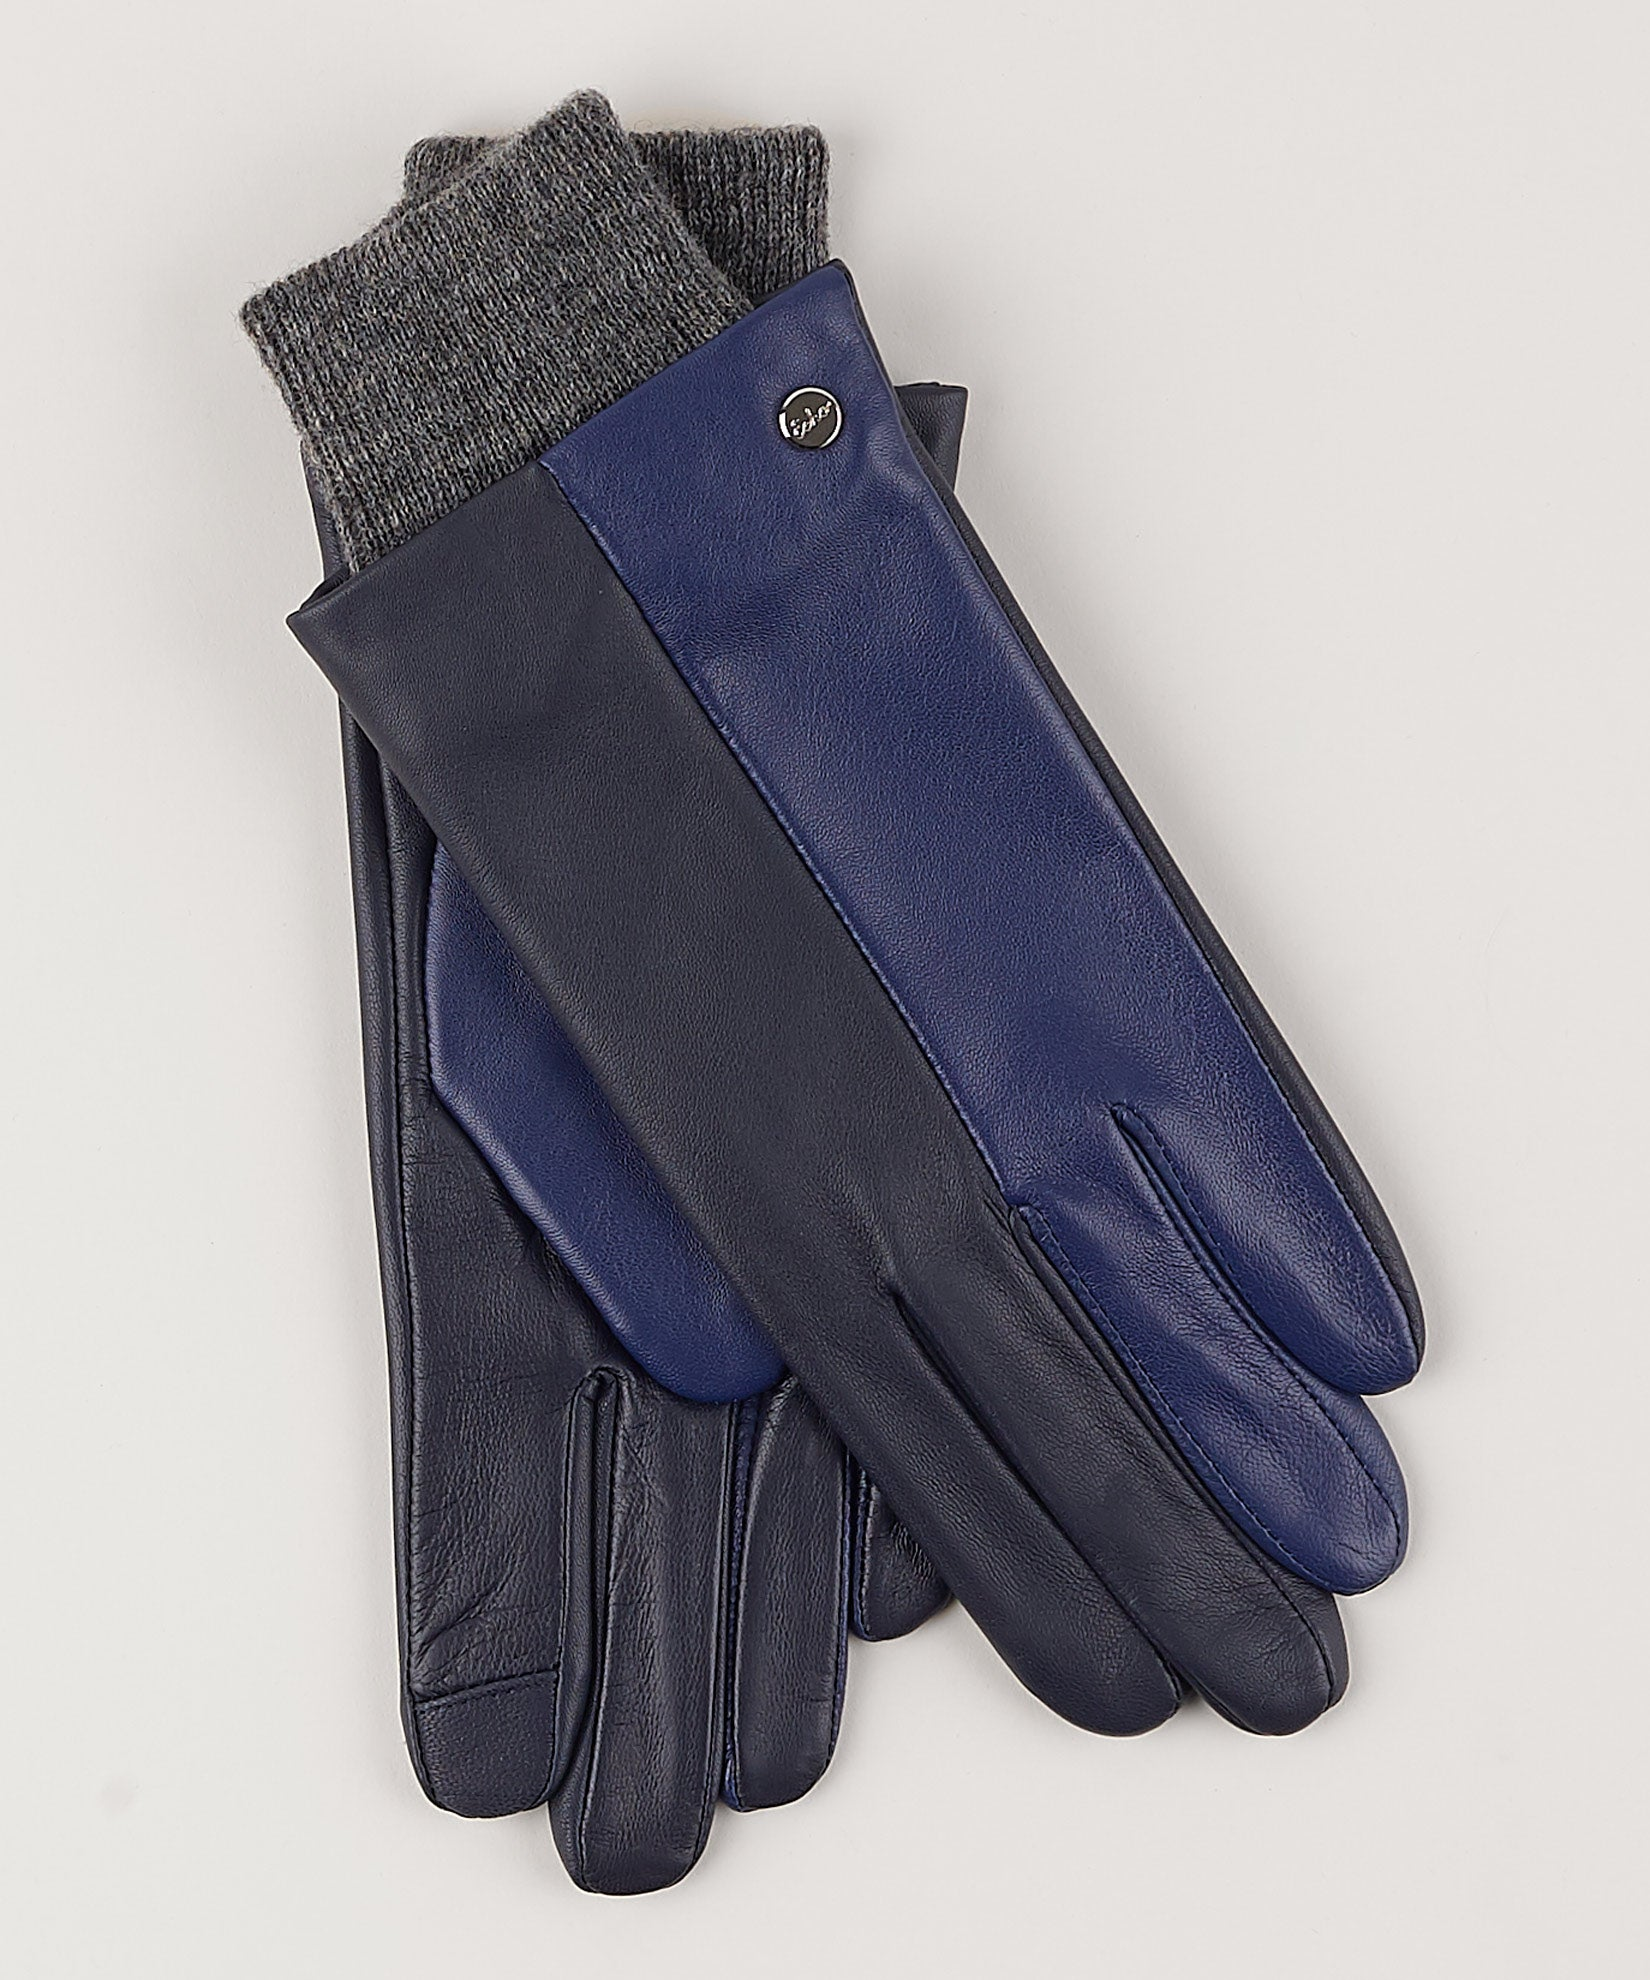 Navy - Leather Colorblock Glove